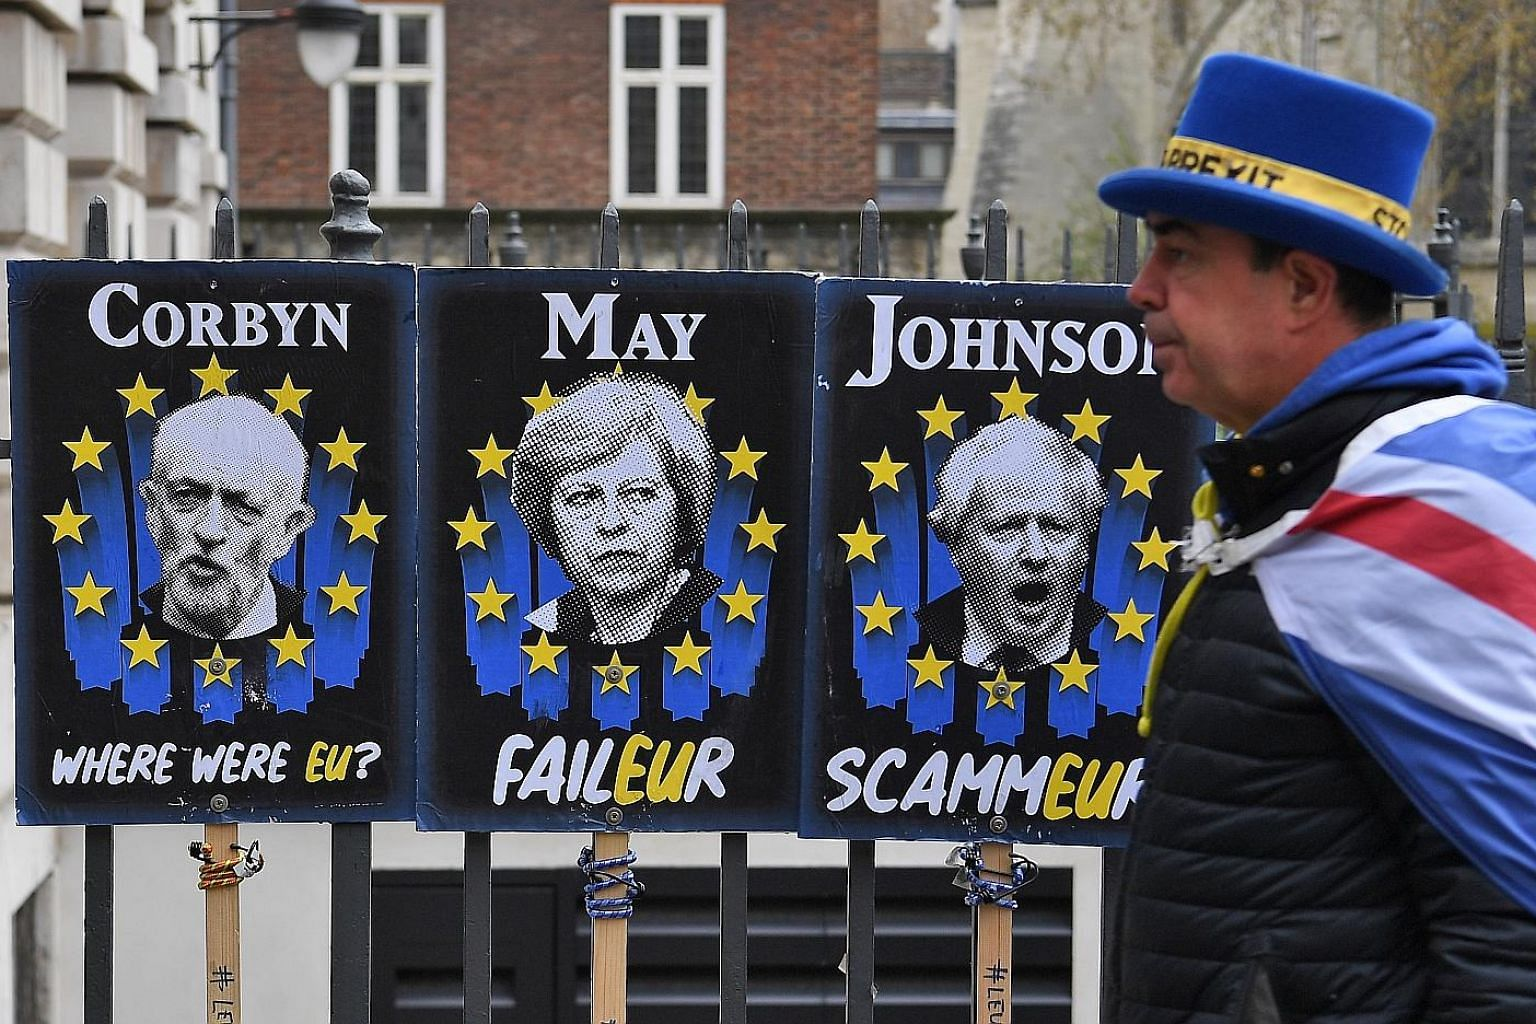 A pro-EU campaigner walking past posters mocking British politicians Jeremy Corbyn, Theresa May and Boris Johnson in London yesterday. A group of lawmakers will try and pass a law today that will force Prime Minister May to further delay Brexit. Barr